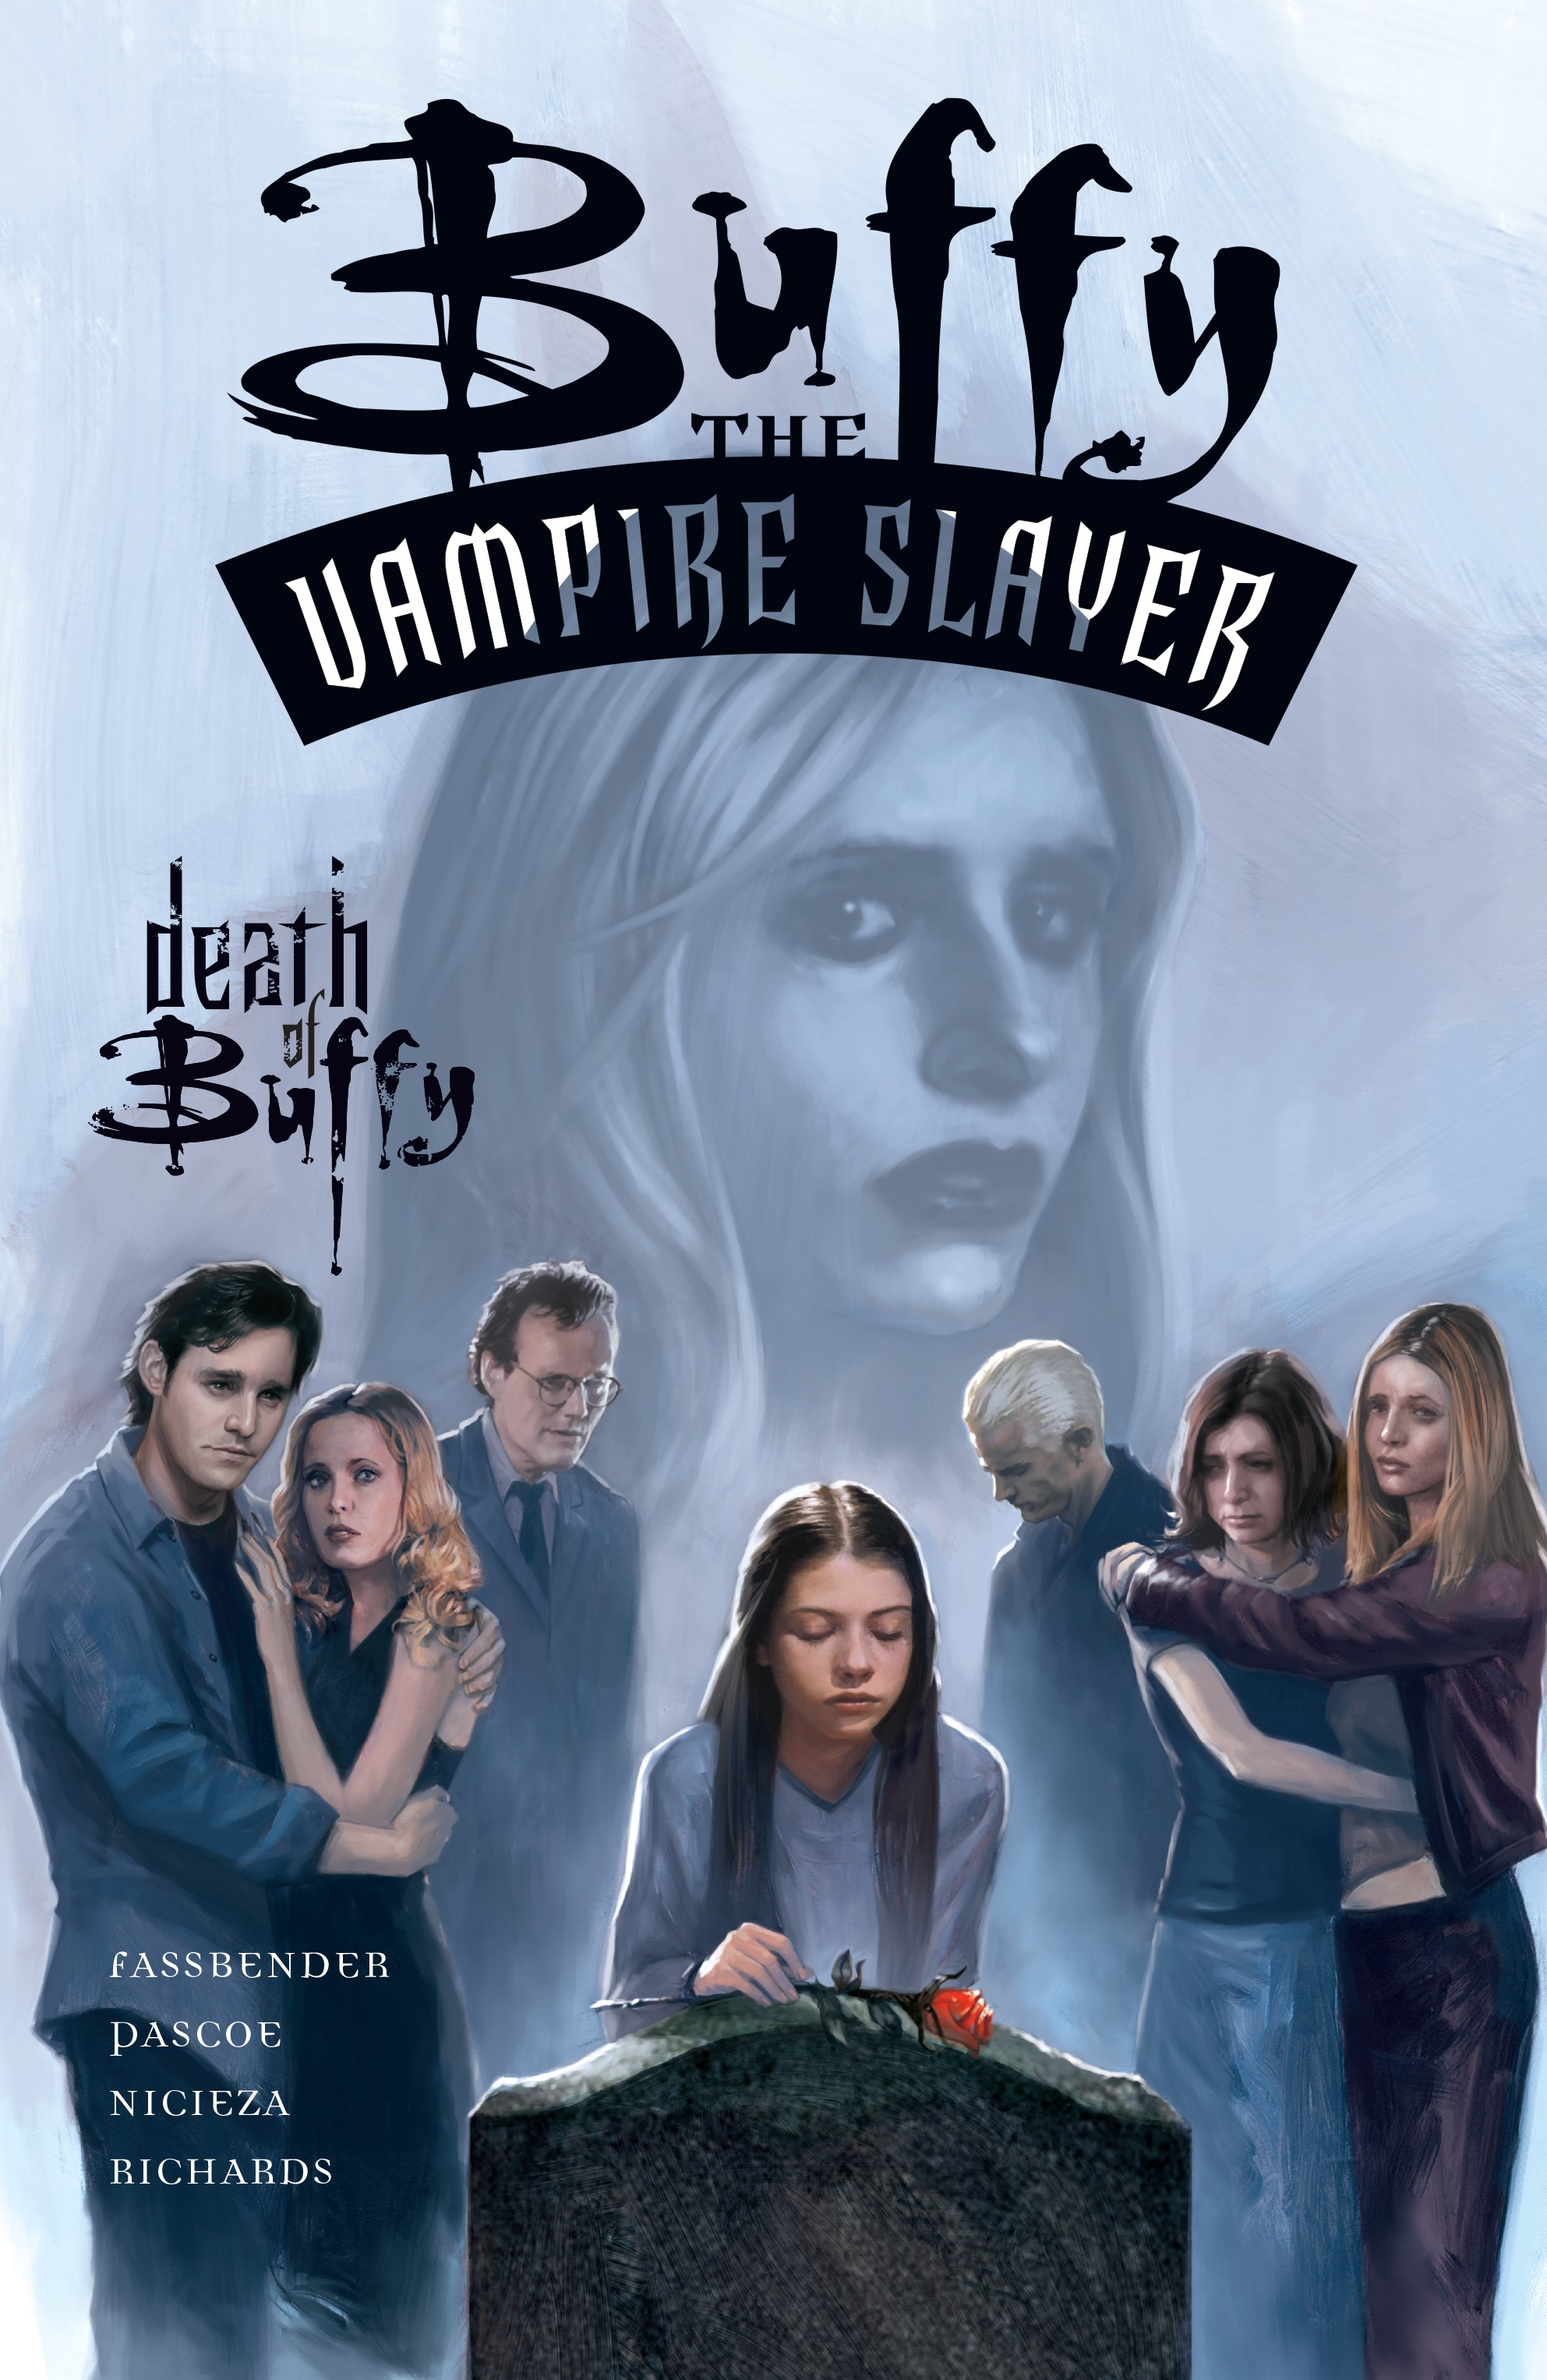 The Death of Buffy